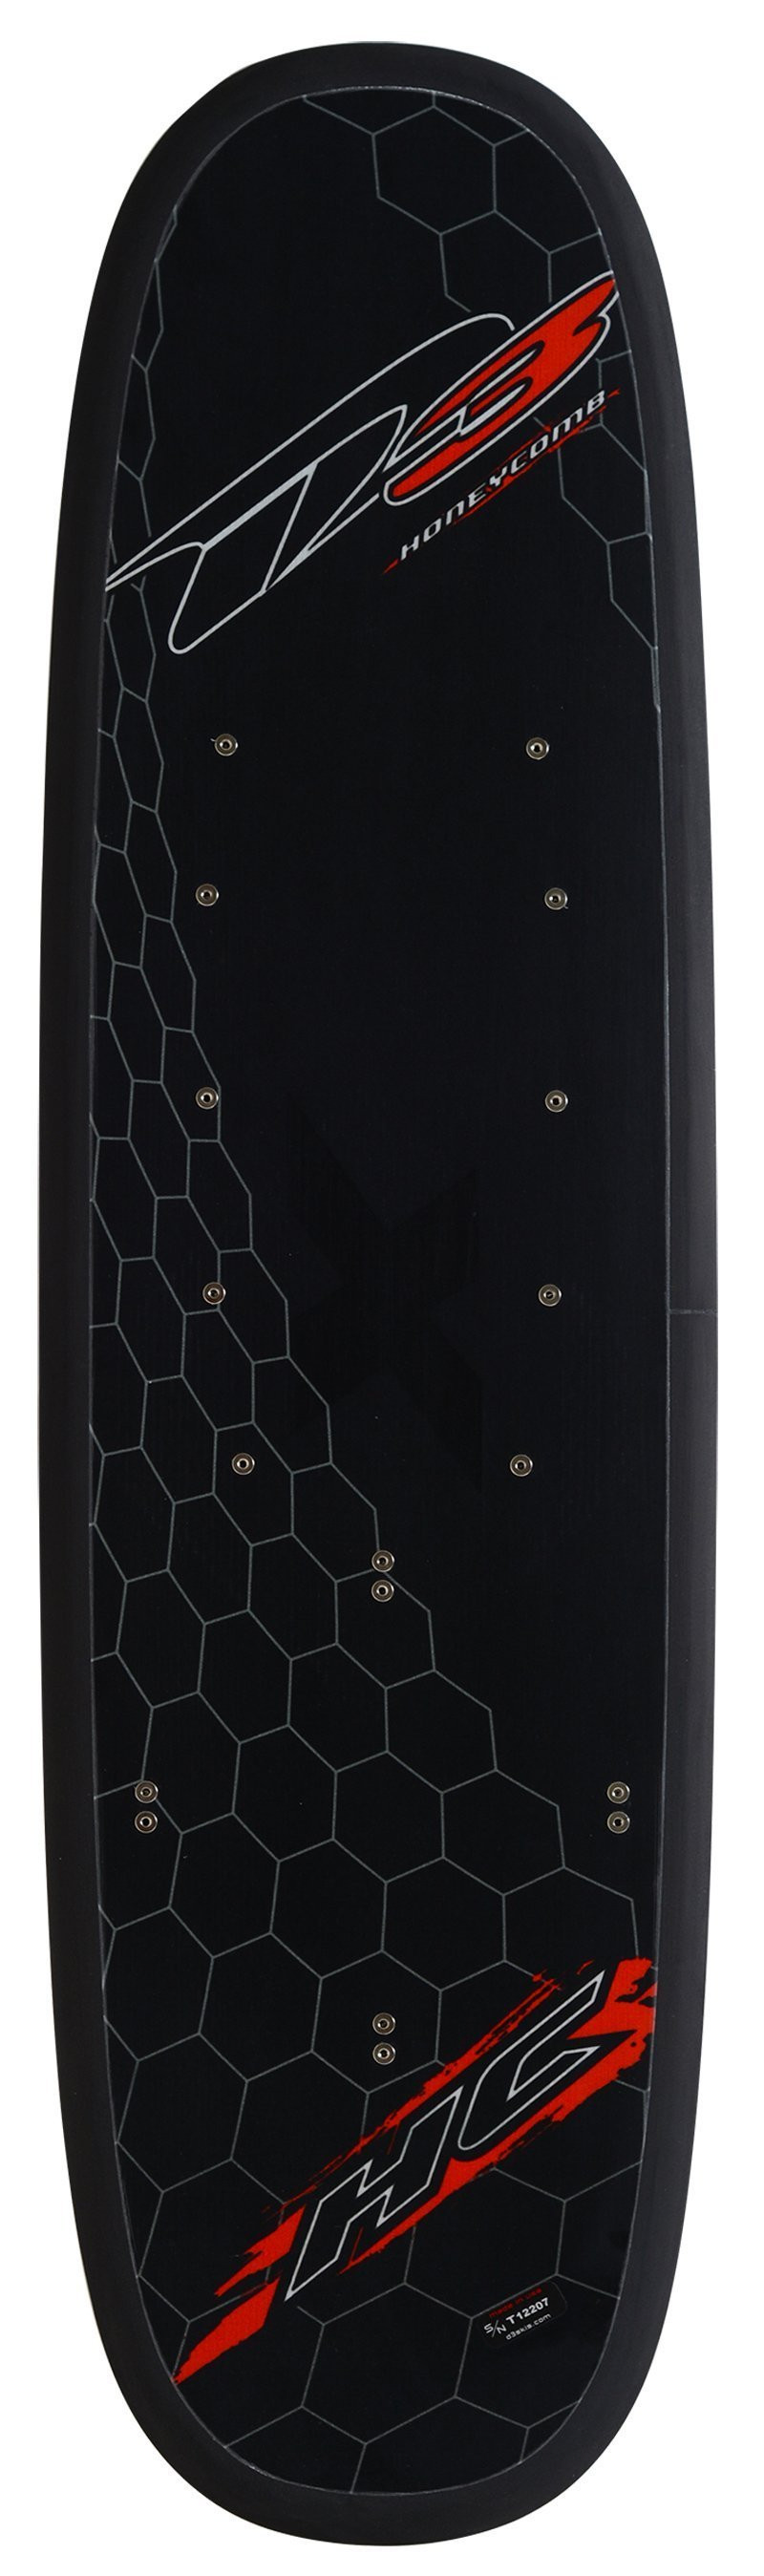 D3 HONEYCOMB LIMITED WITH REAR INSERTS